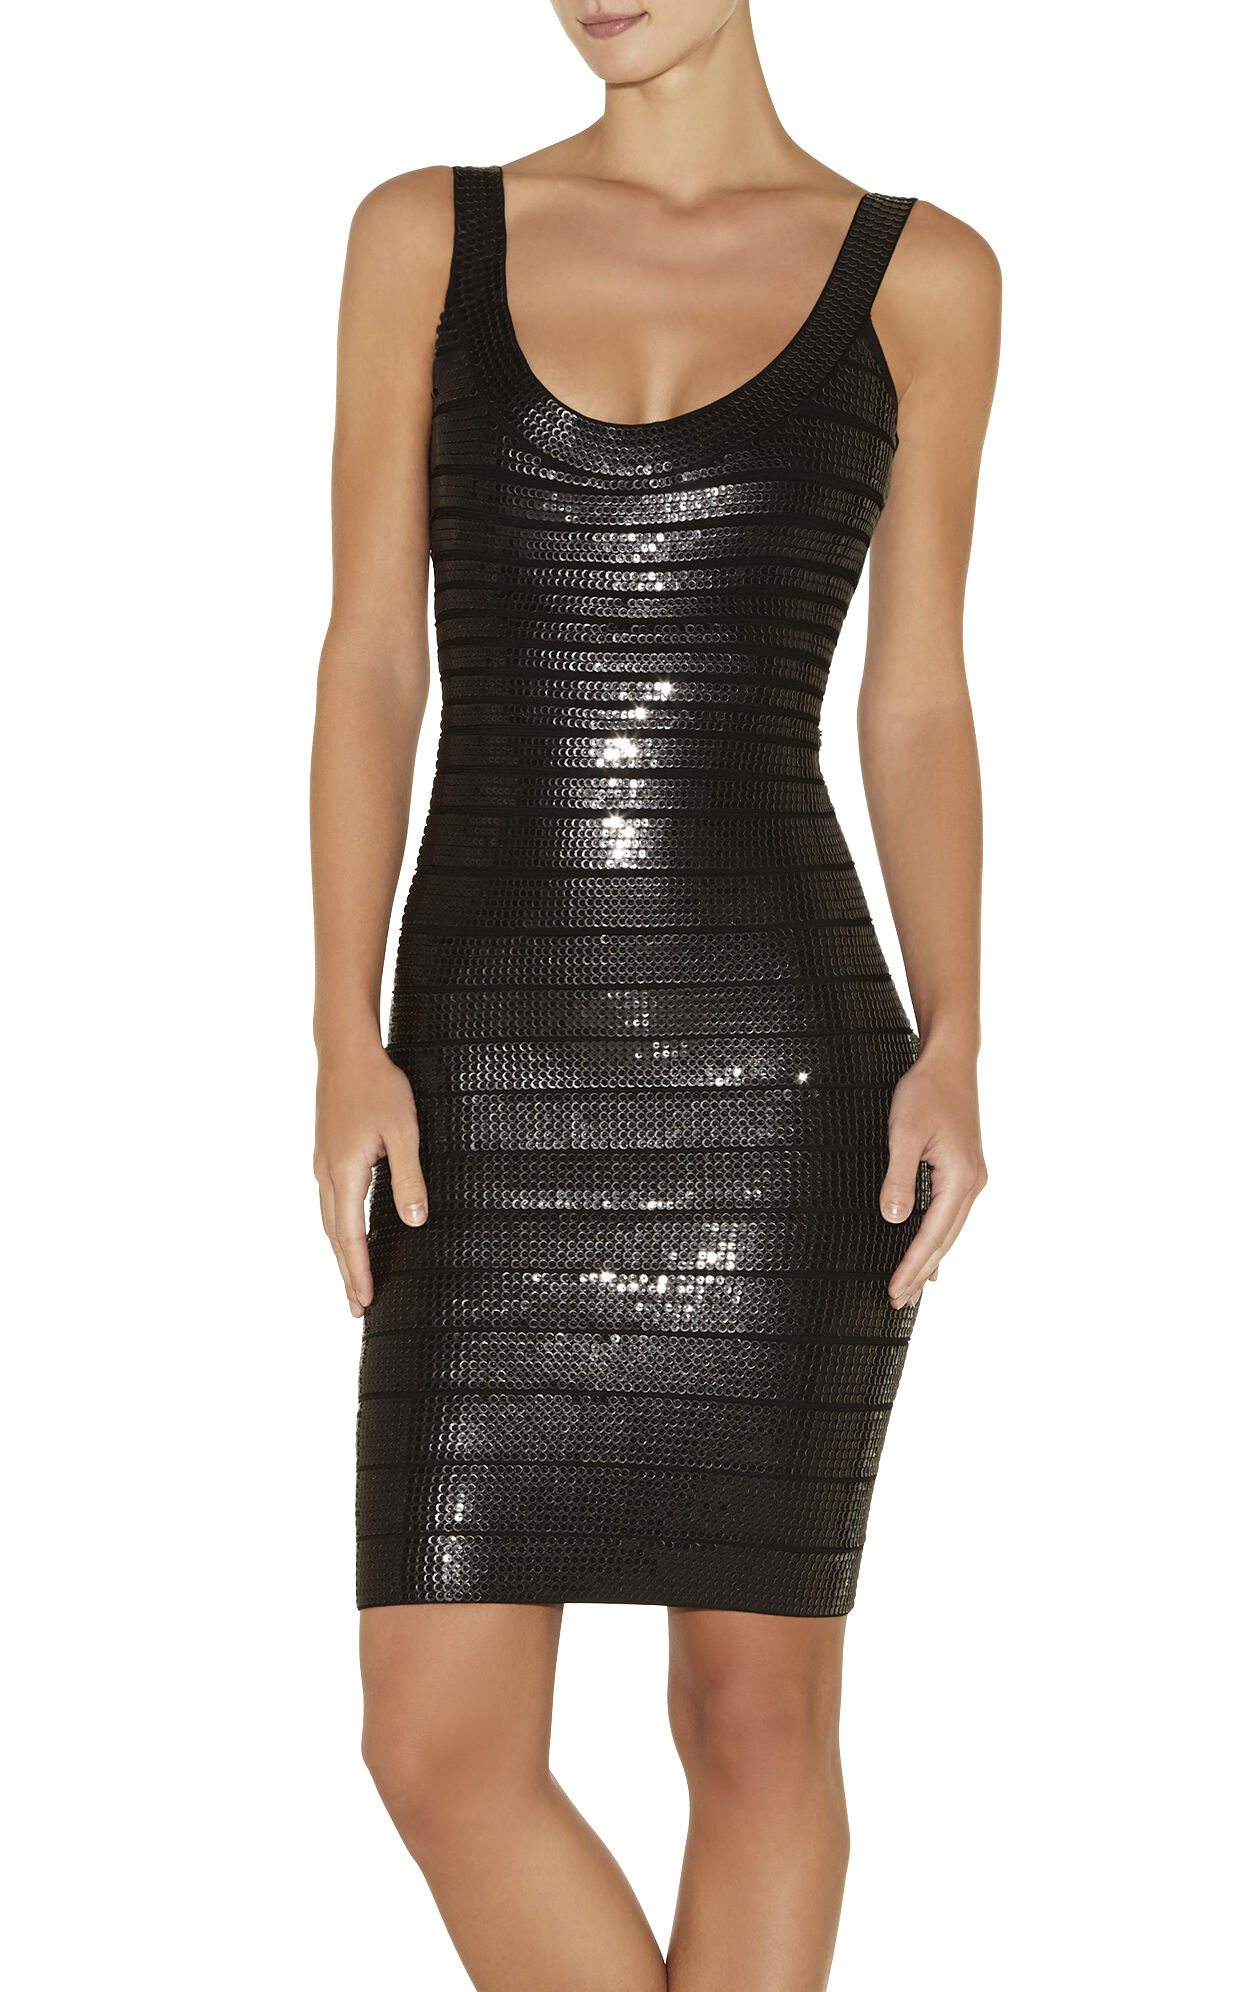 Lilykate Stacked Leather Sequined Dress